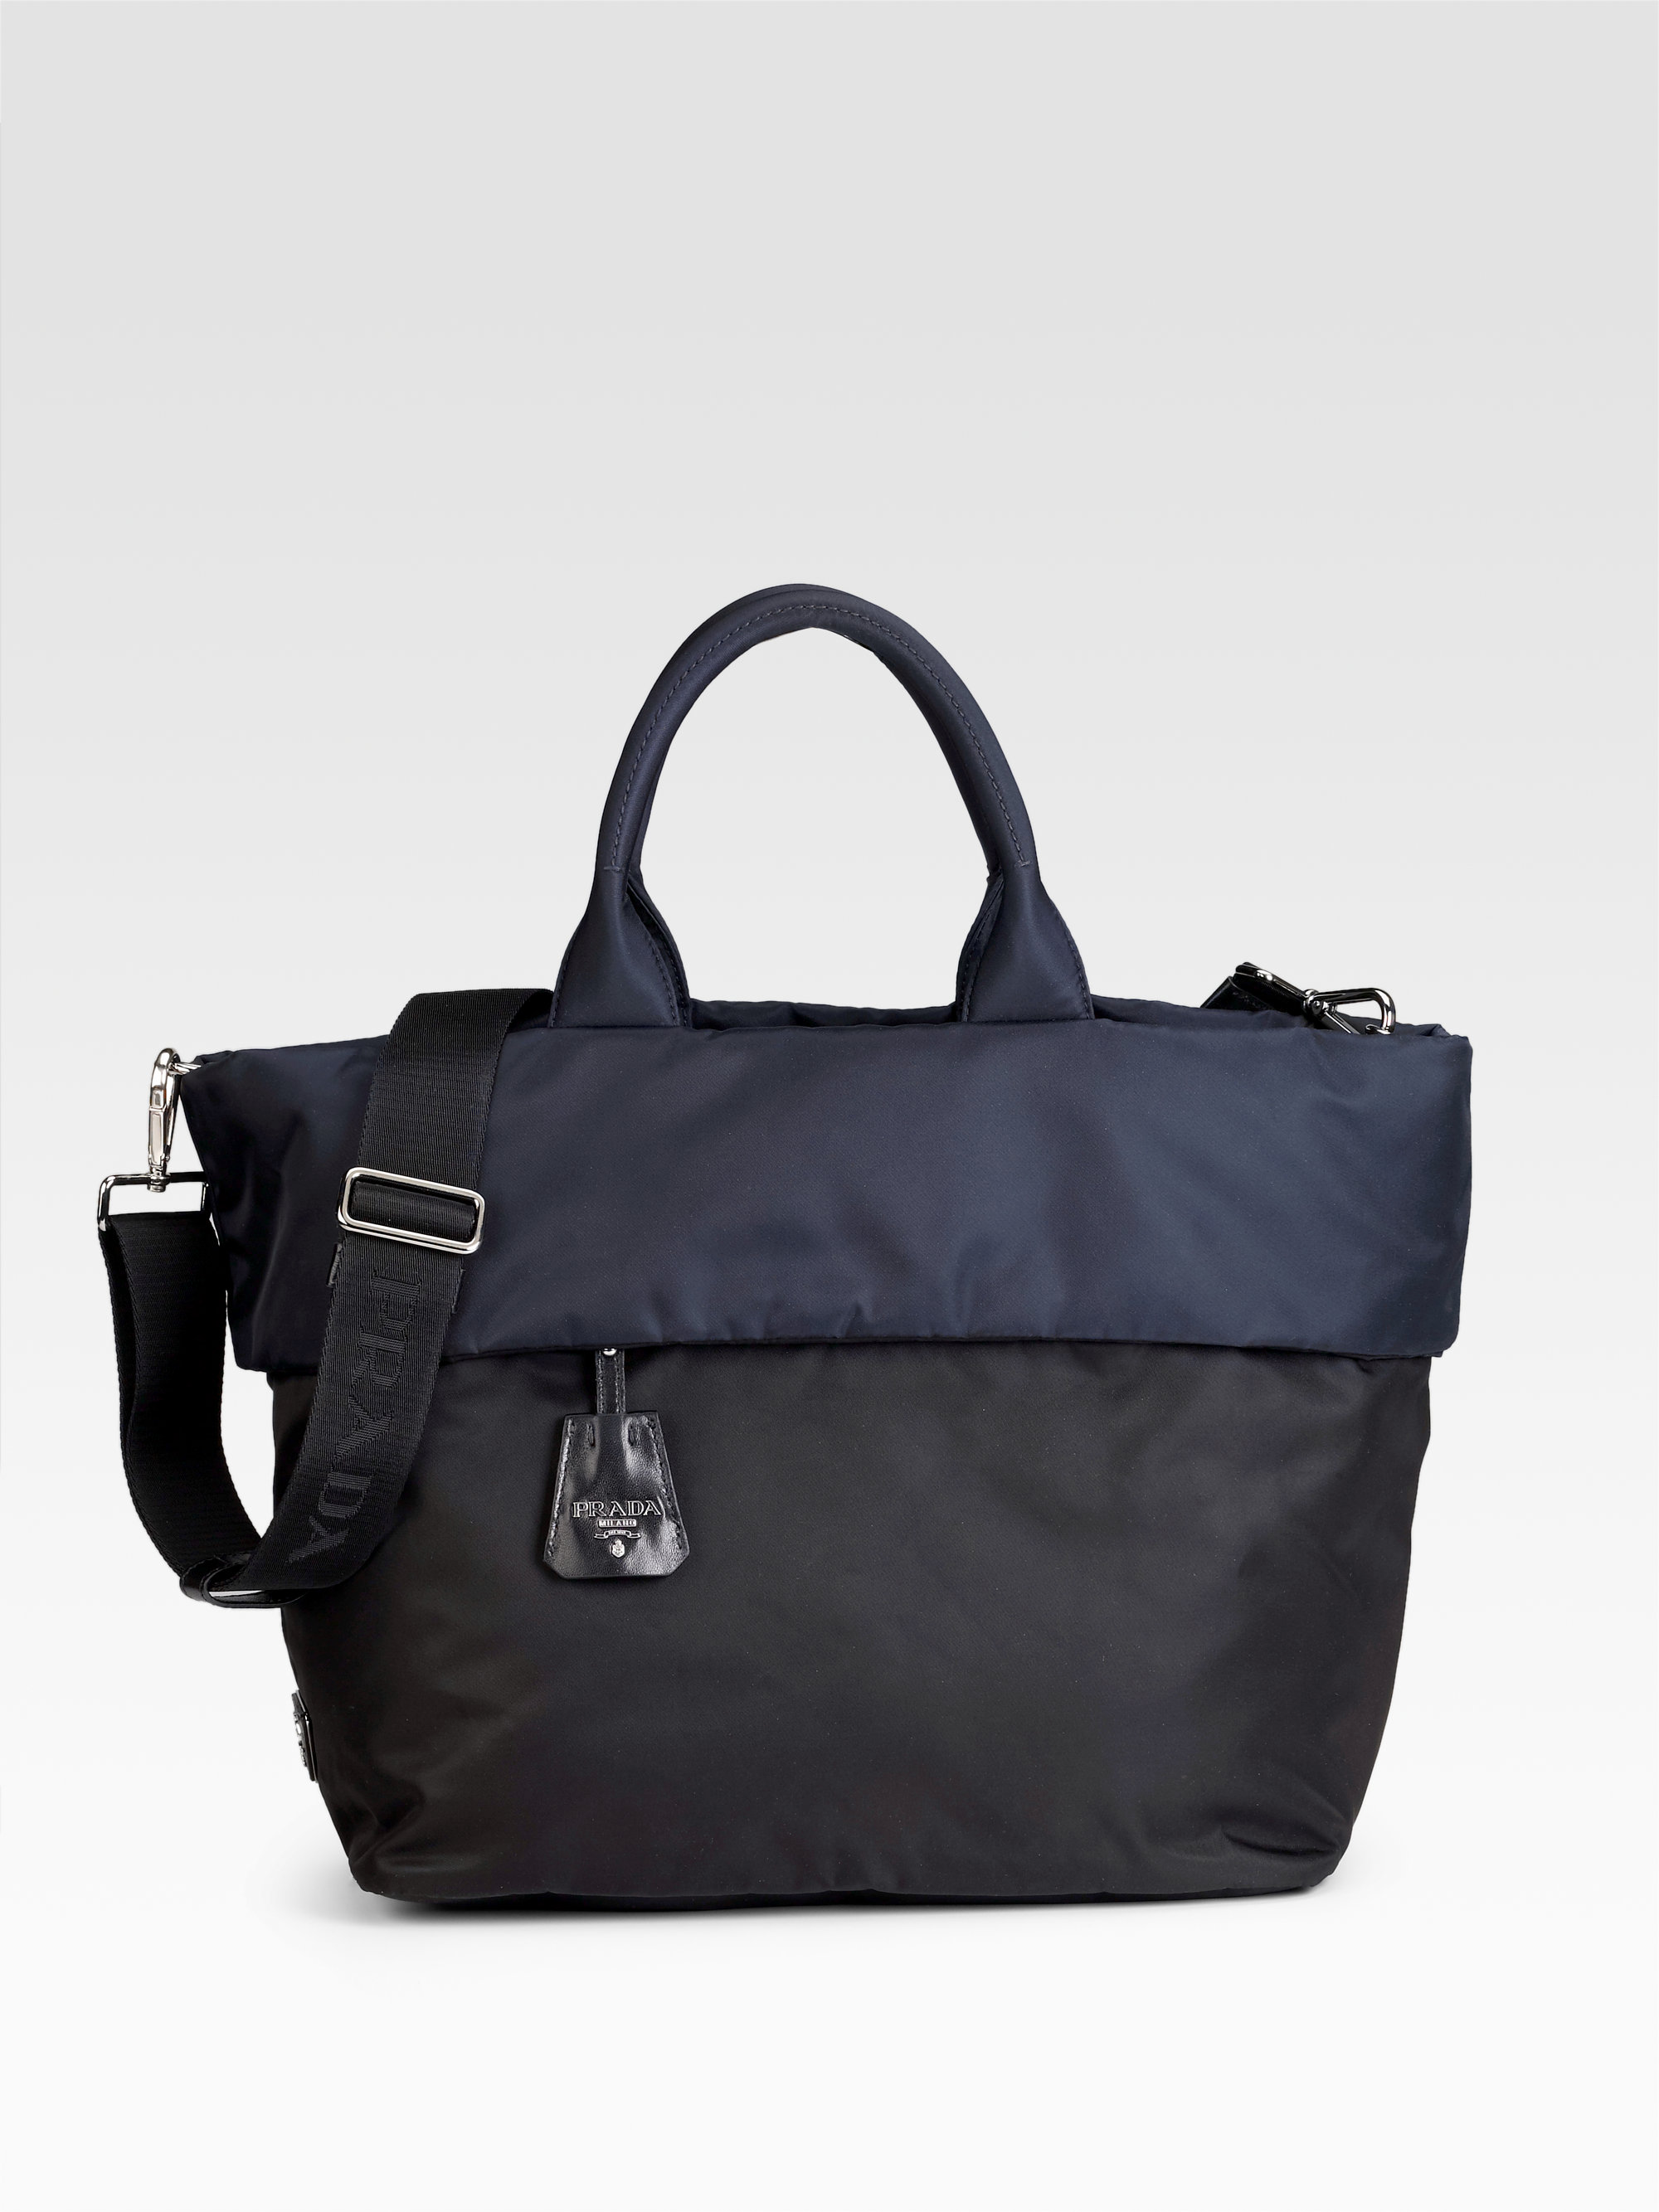 2b3040336520 Prada Tote Black | Stanford Center for Opportunity Policy in Education